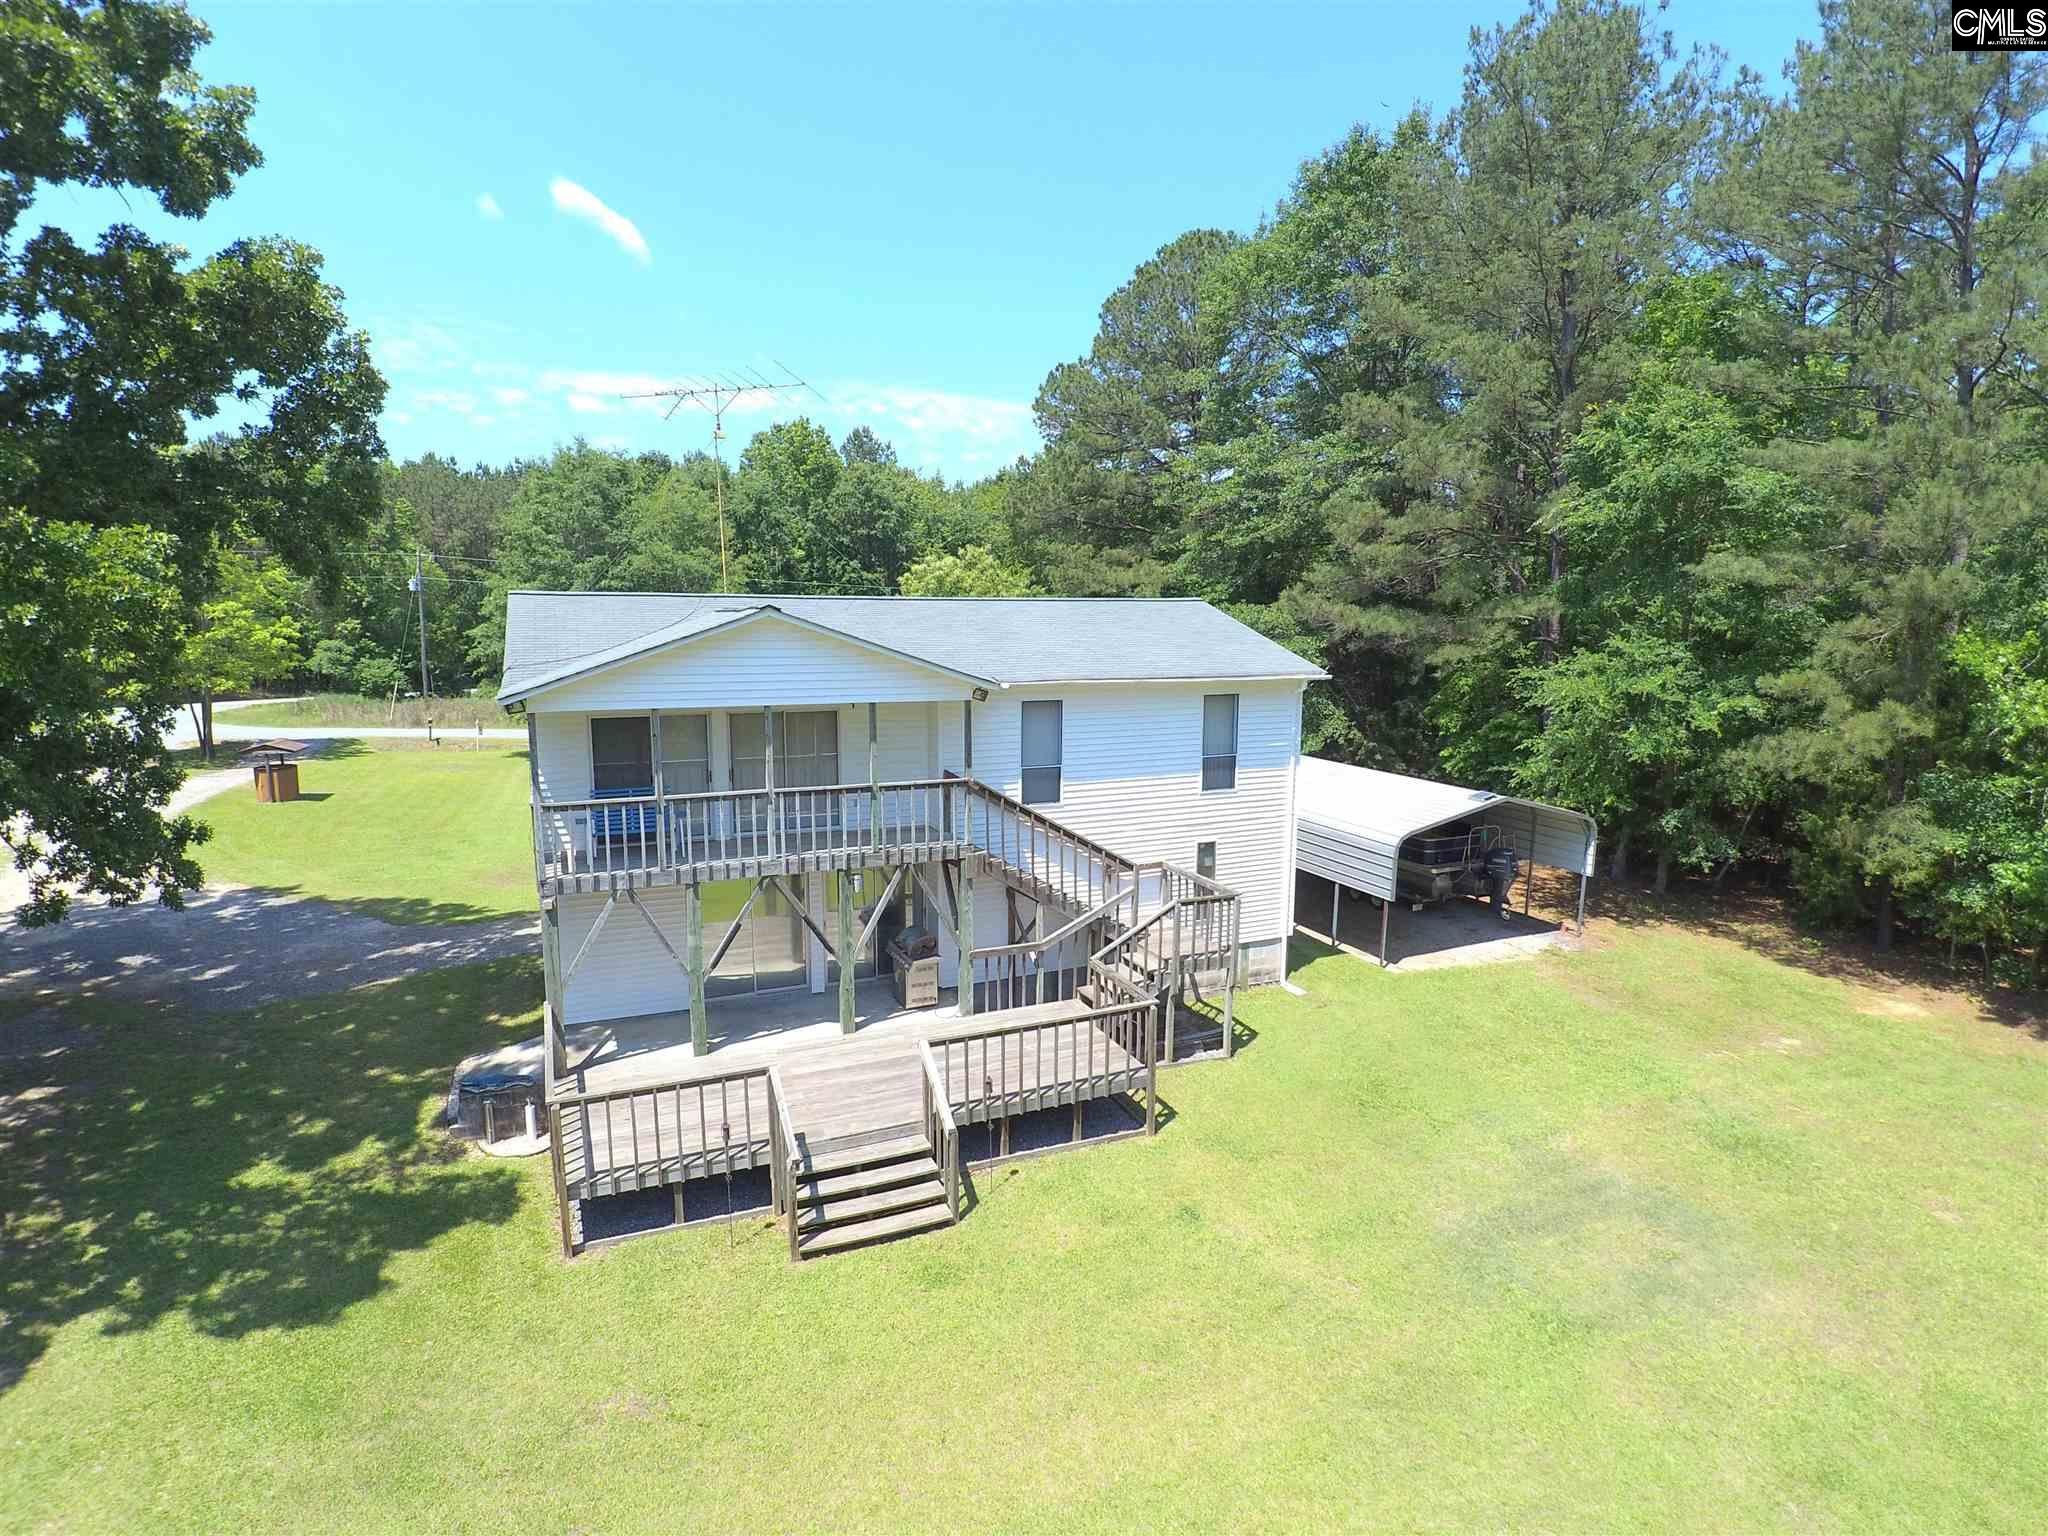 179 Morninglow Winnsboro, SC 29180